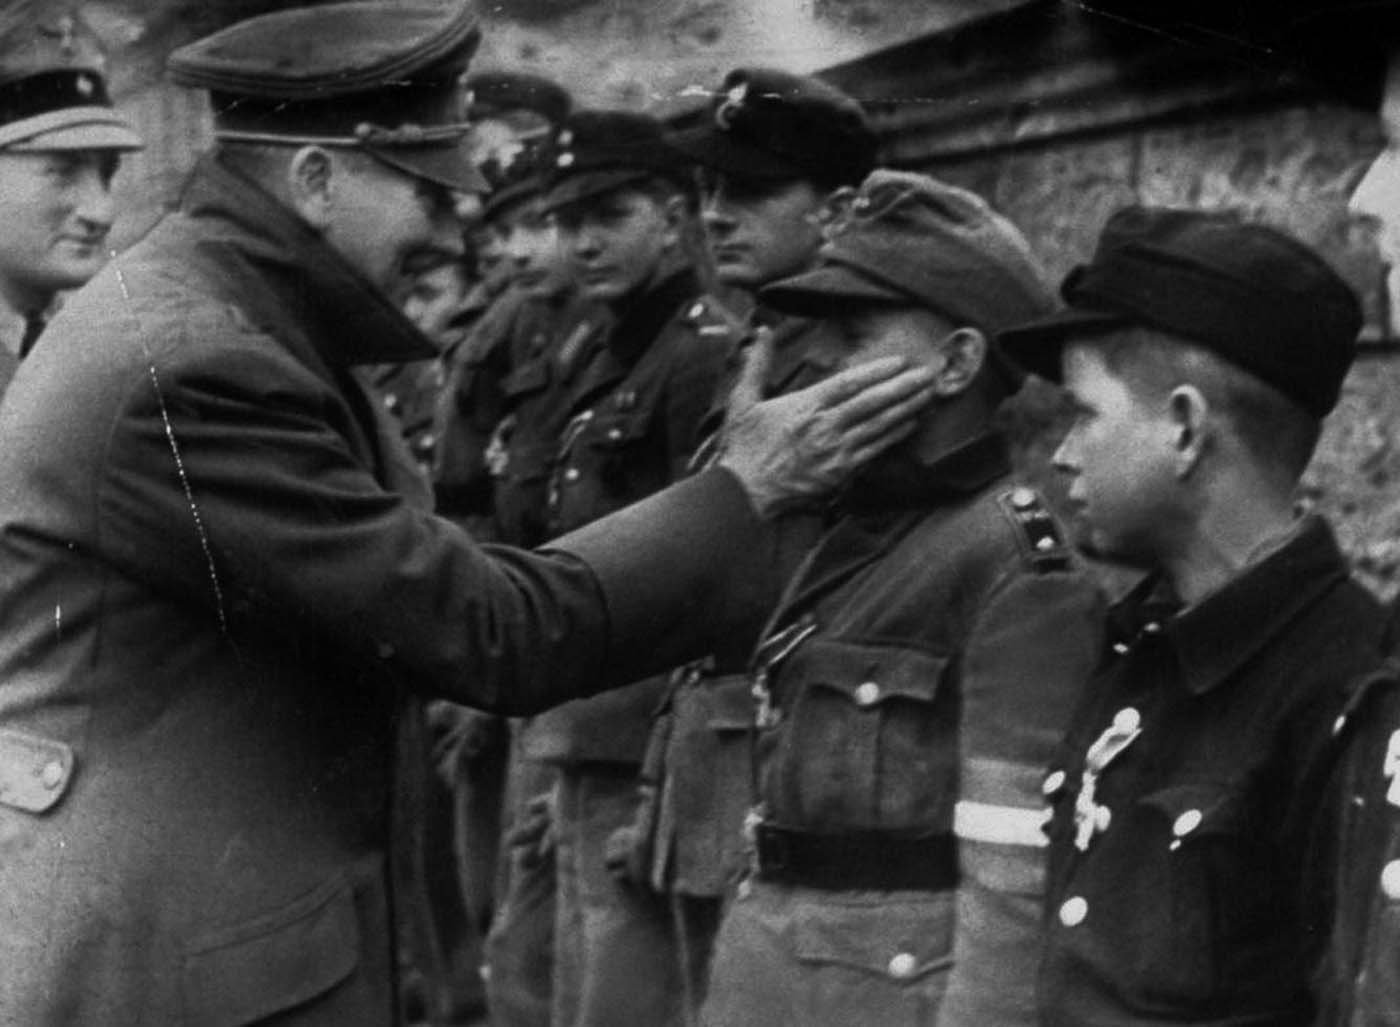 Adolf Hitler touches the face of Wilhelm